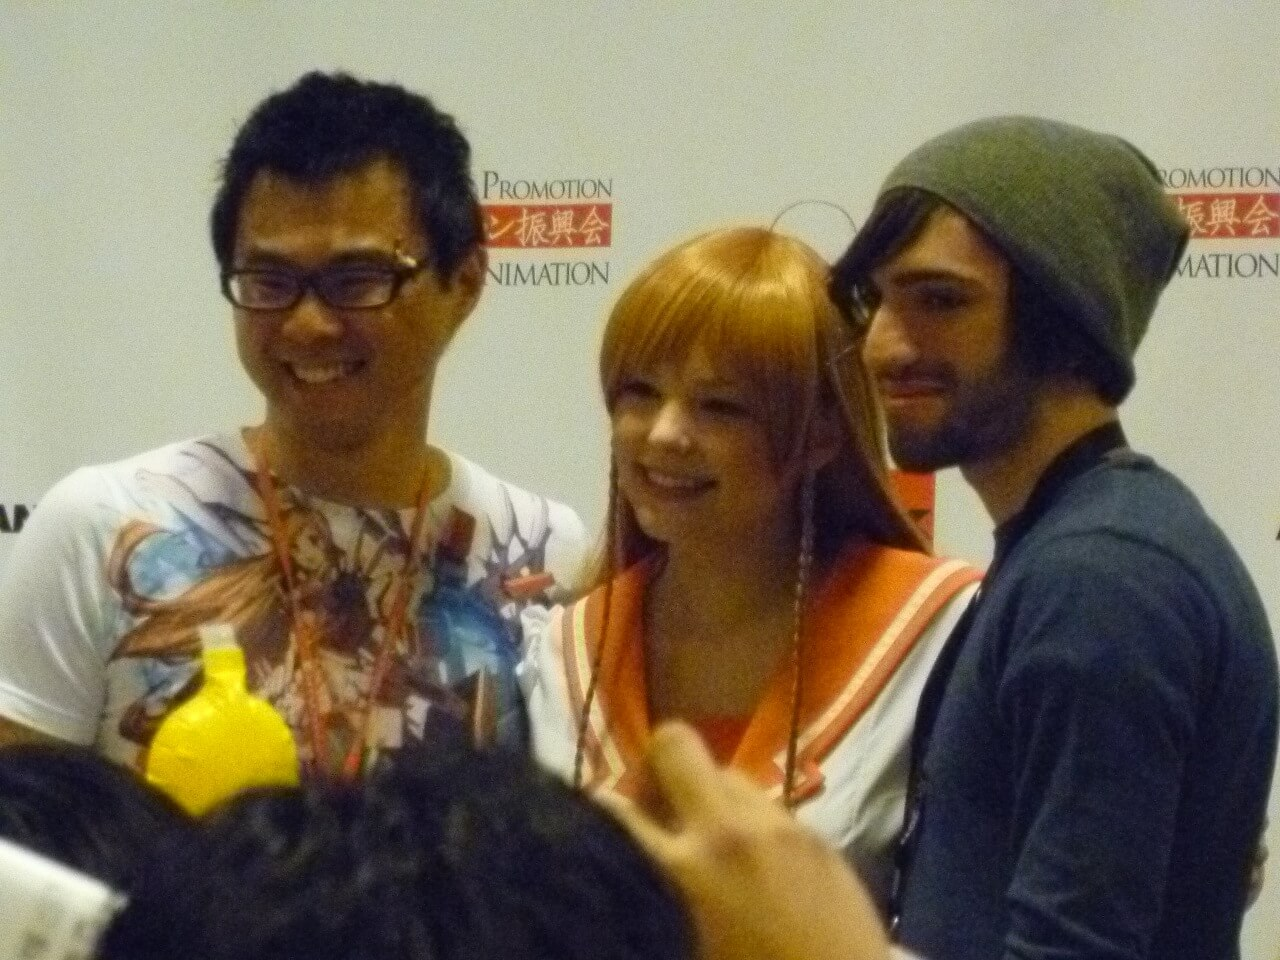 Anime Expo 2011: Megatokyo, Danny Choo, new Gundam, and more! 7